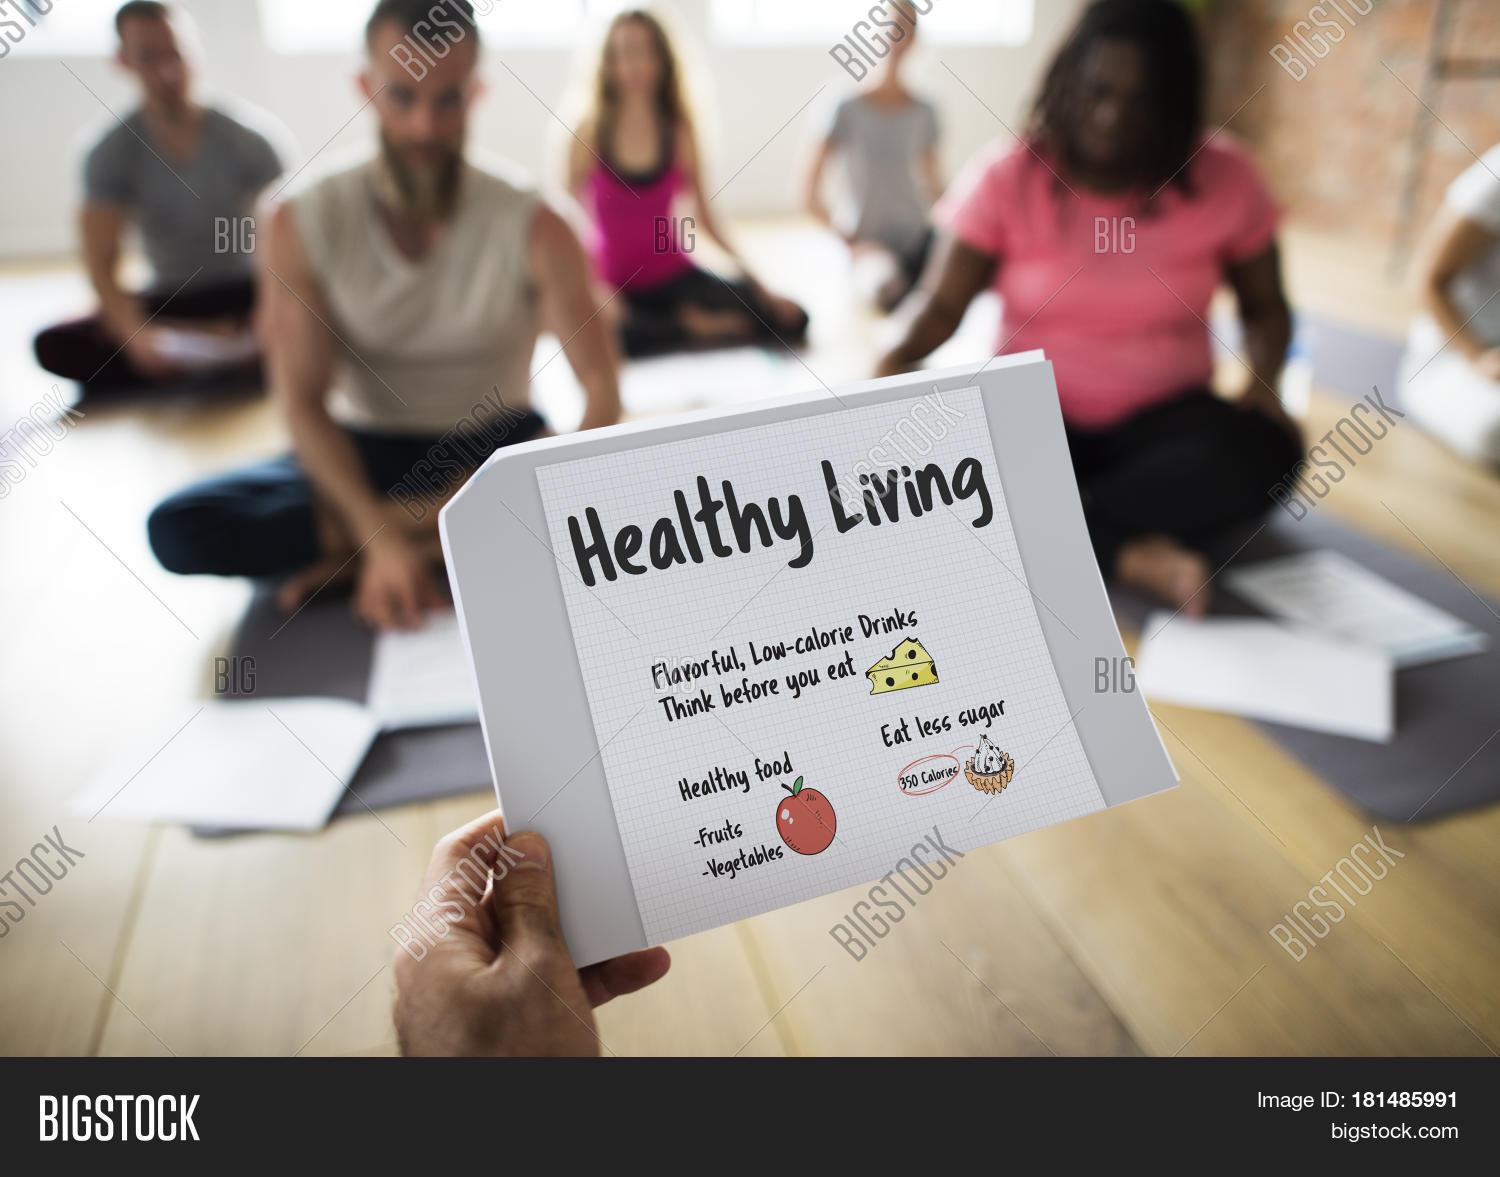 Diet plan for healthy life - Wellness Diet Plan Healthy Living Icon